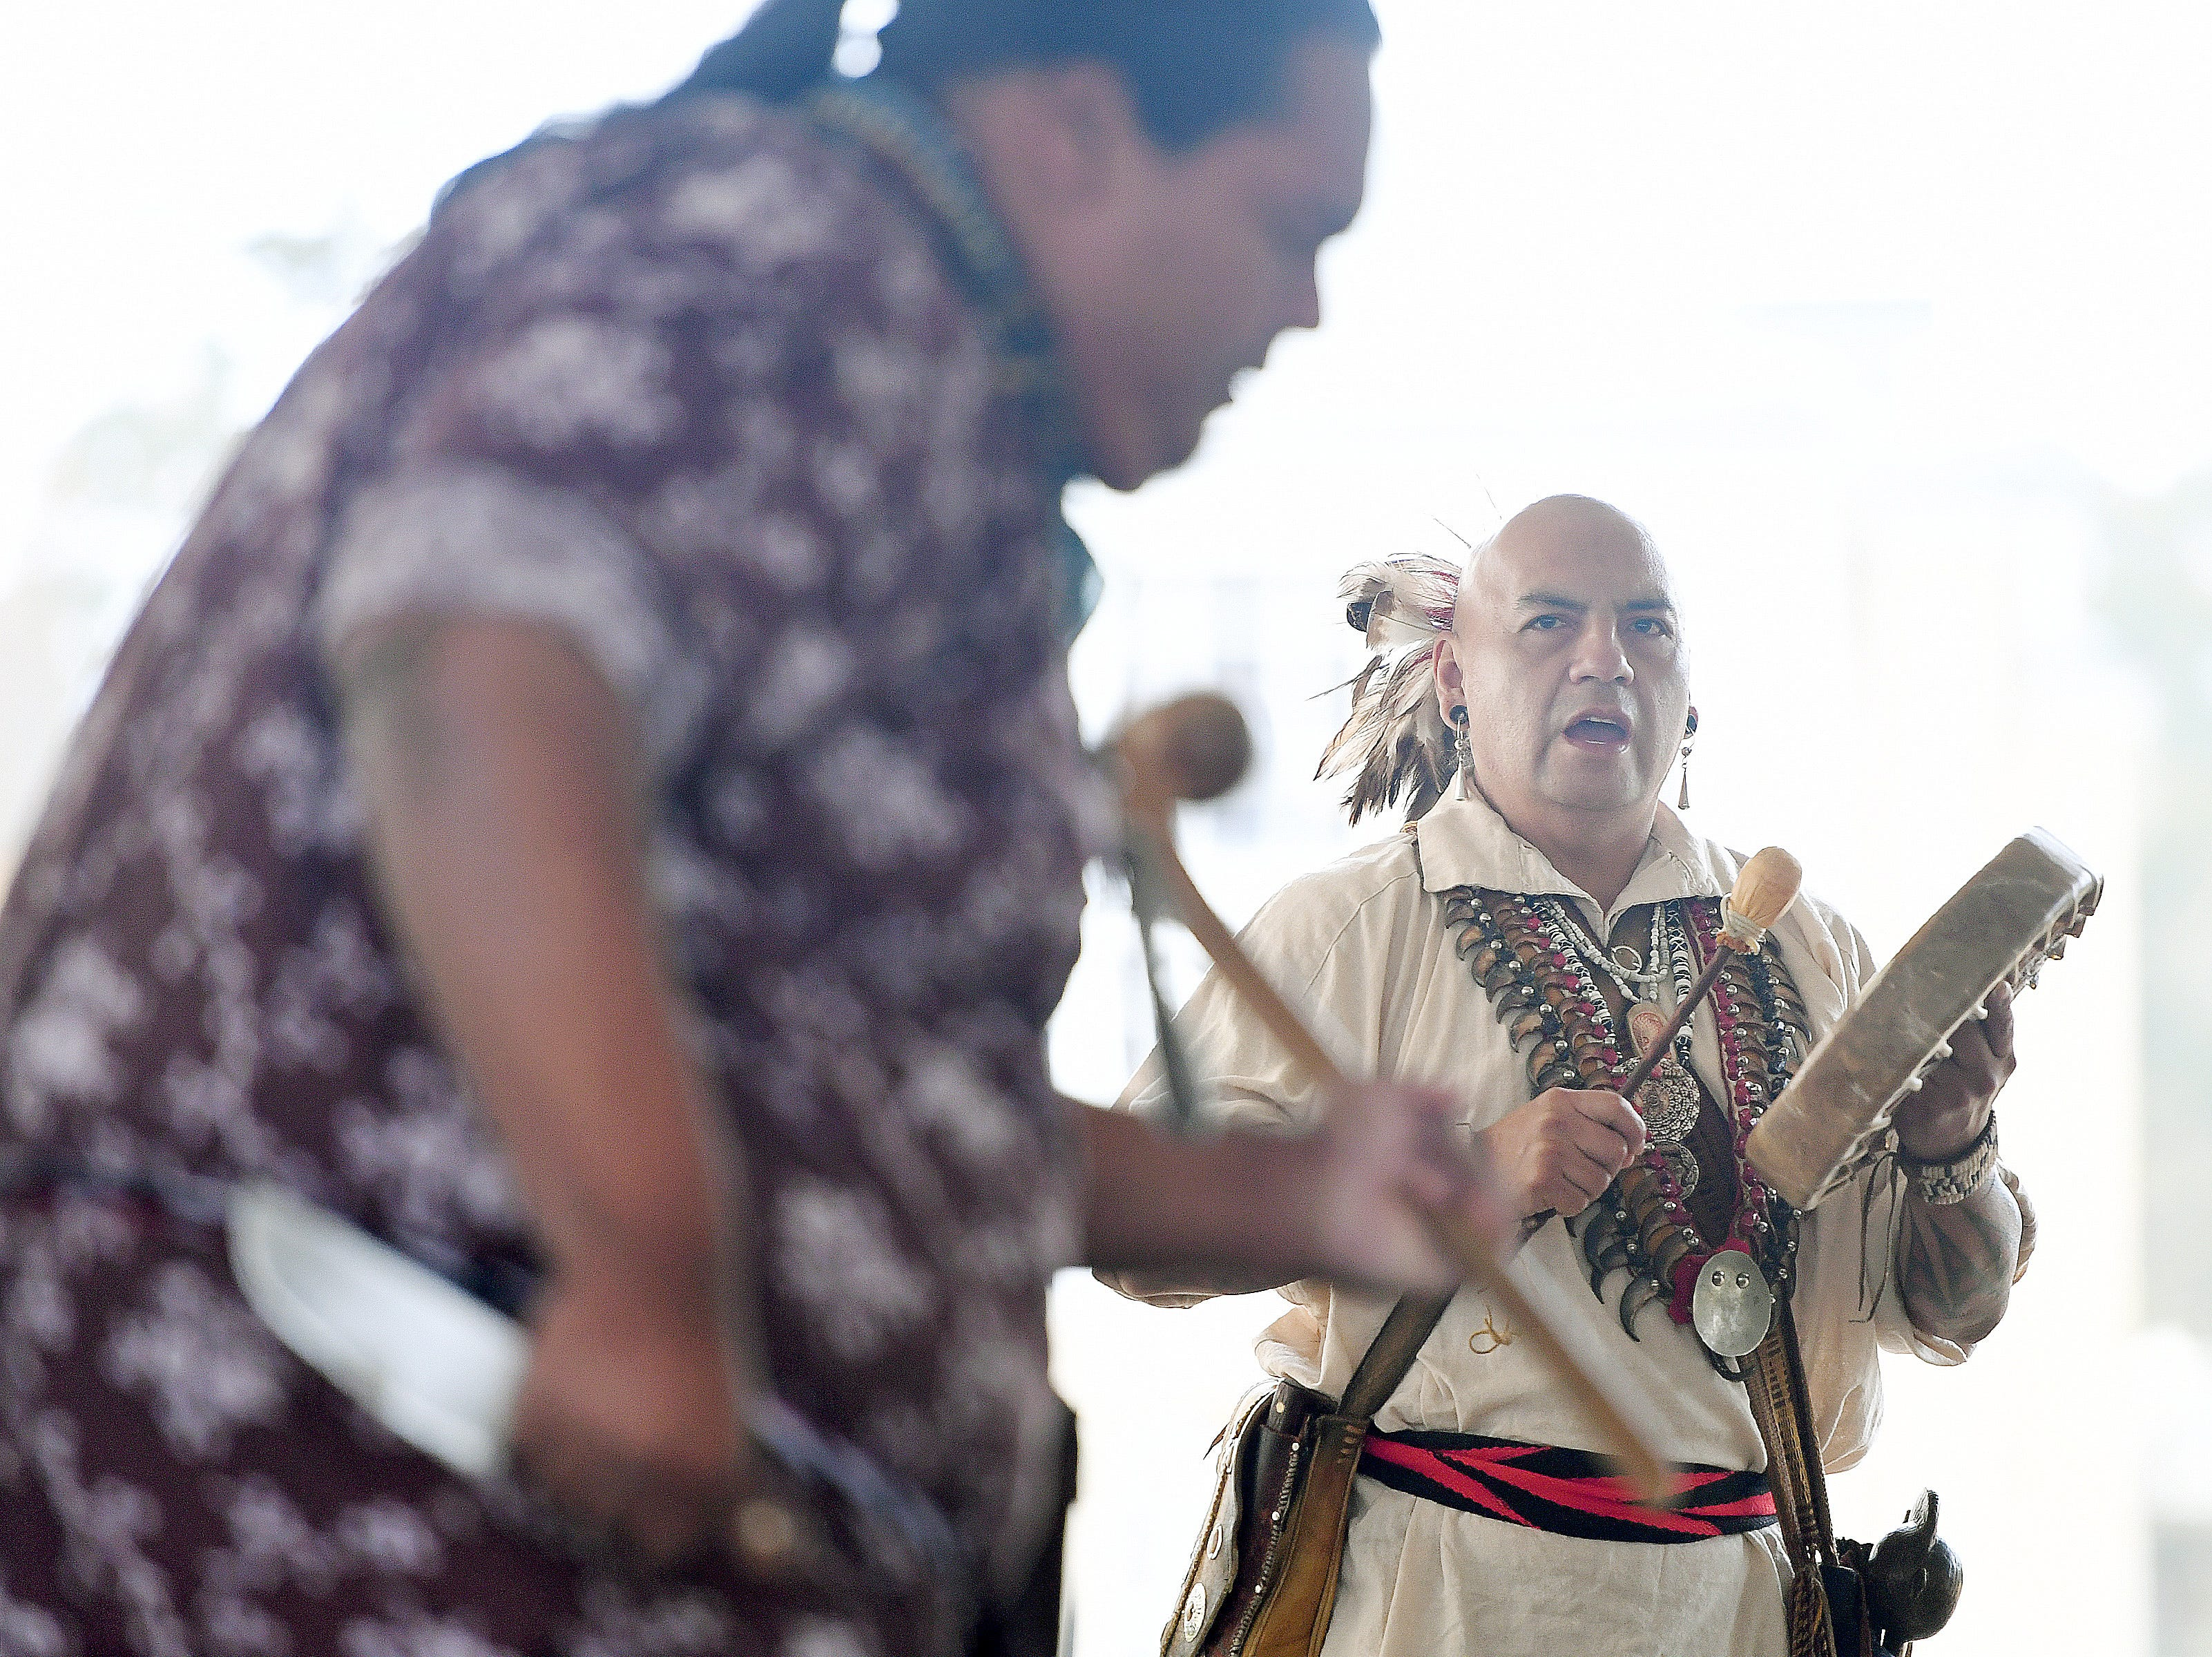 Jarrett Wildcat, left, and Sonny Ledford, with the Museum of the Cherokee Indian, perform a warrior dance during a ceremony celebrating the opening of the Veterans Hope and Recovery Center on the campus of the Charles George VA Medical Center on Oct. 26, 2018.